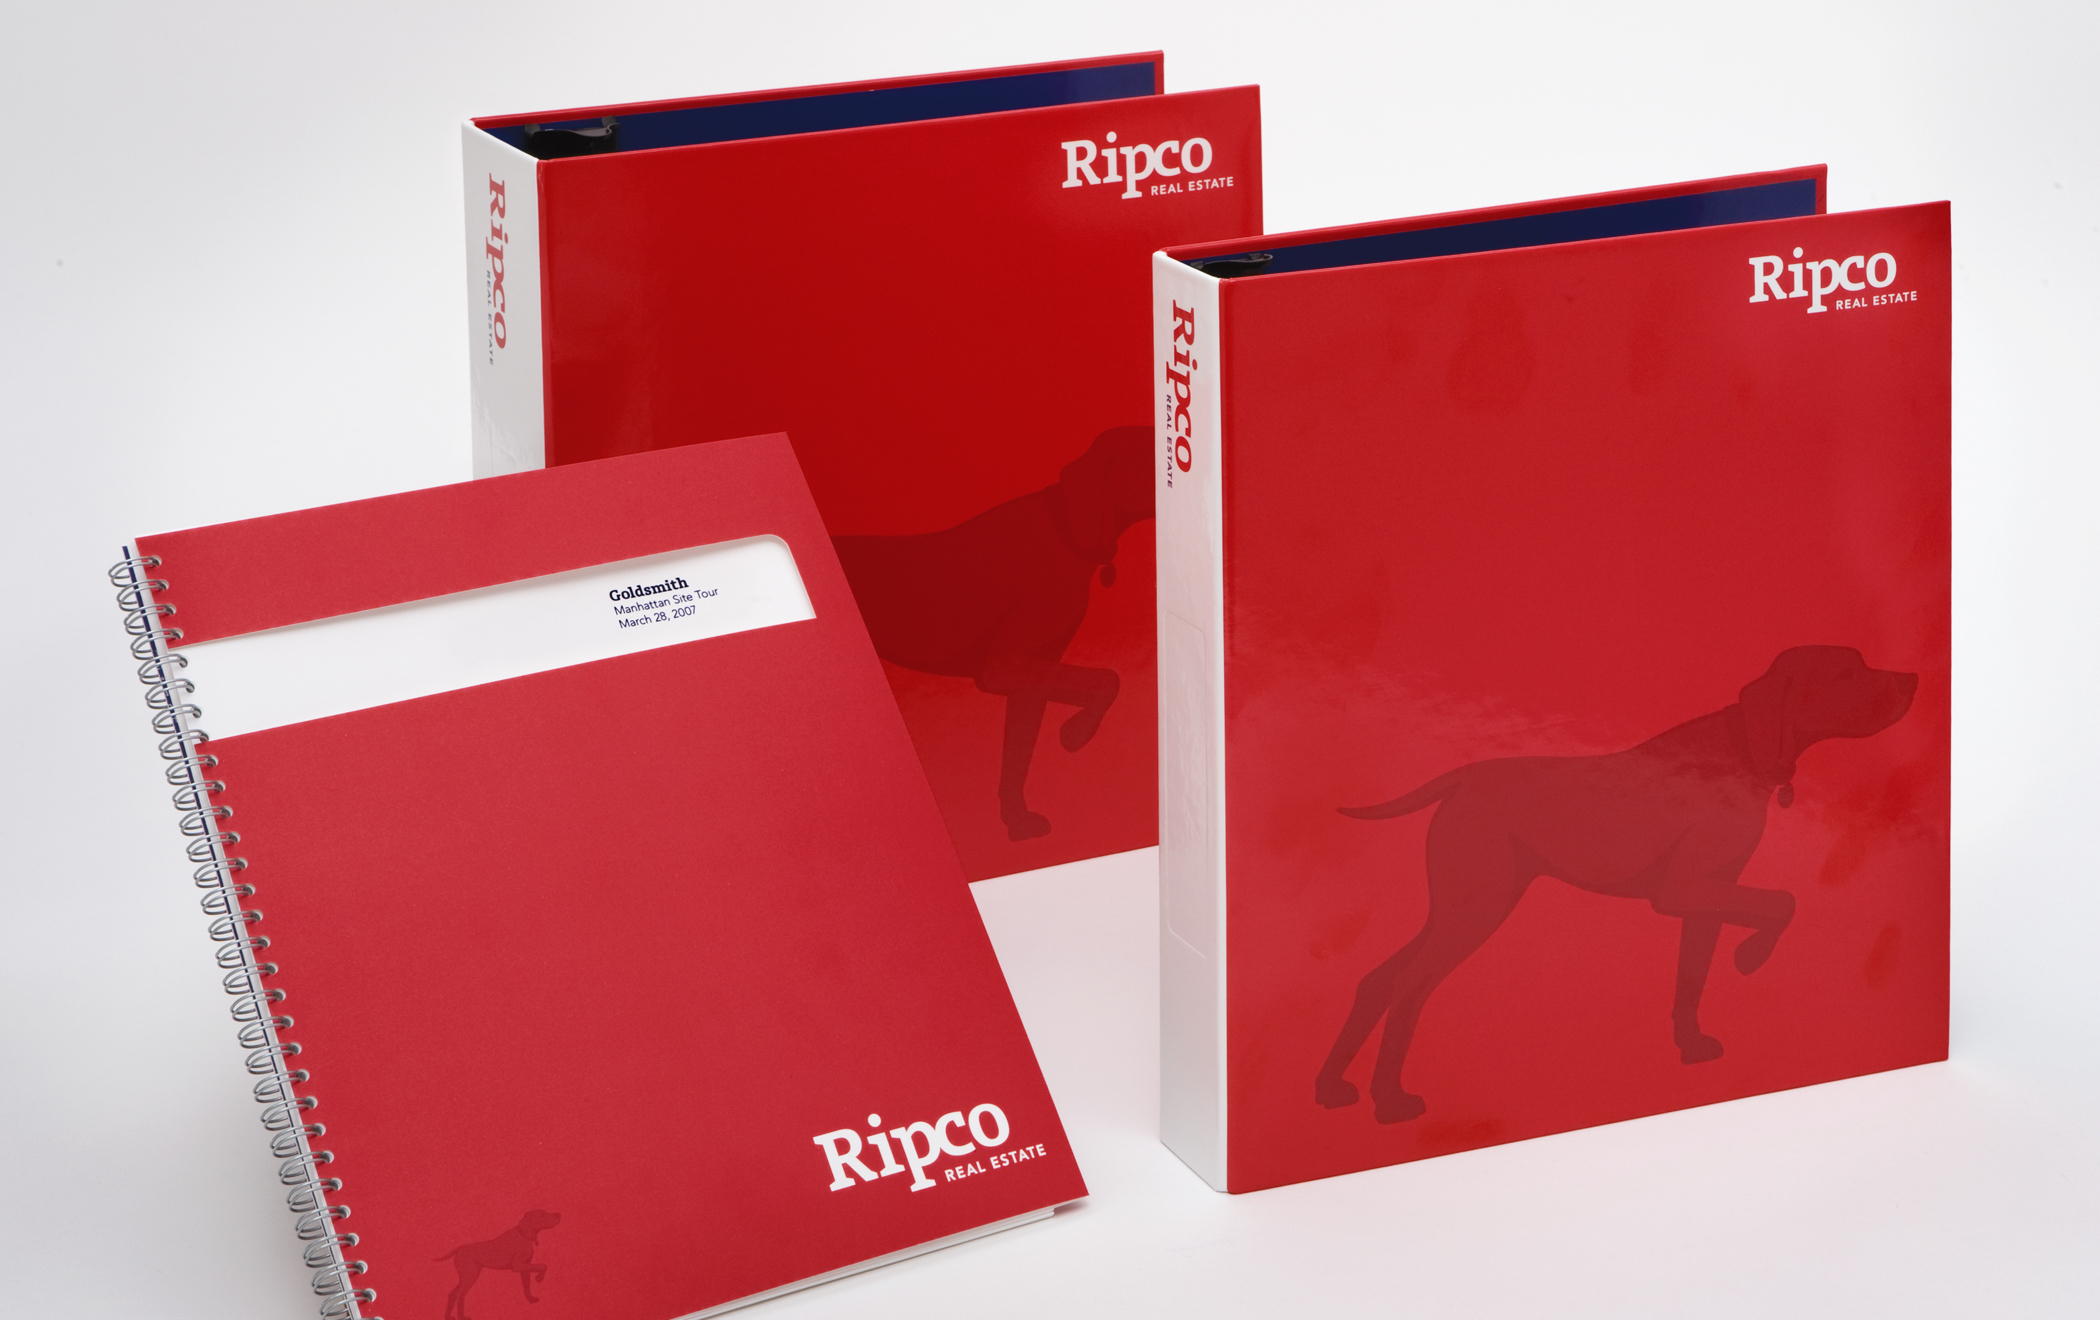 Several red Ripco binders and notebooks featuring the hunting-dog-in-a-pointer-pose brand symbol.